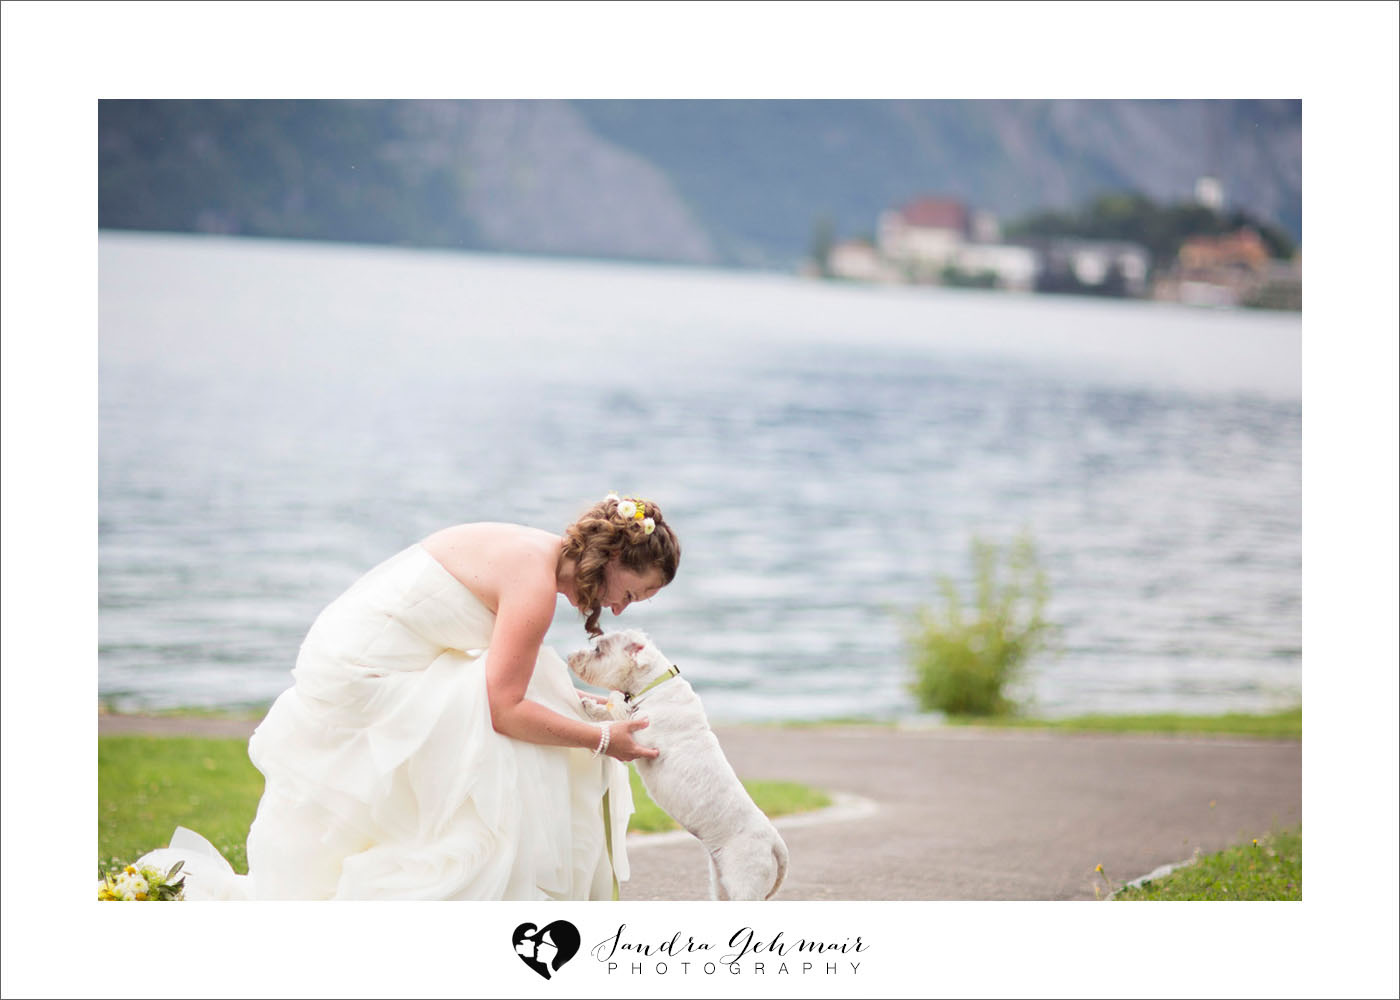 046_heiraten_am_see_spitzvilla_sandra_gehmair